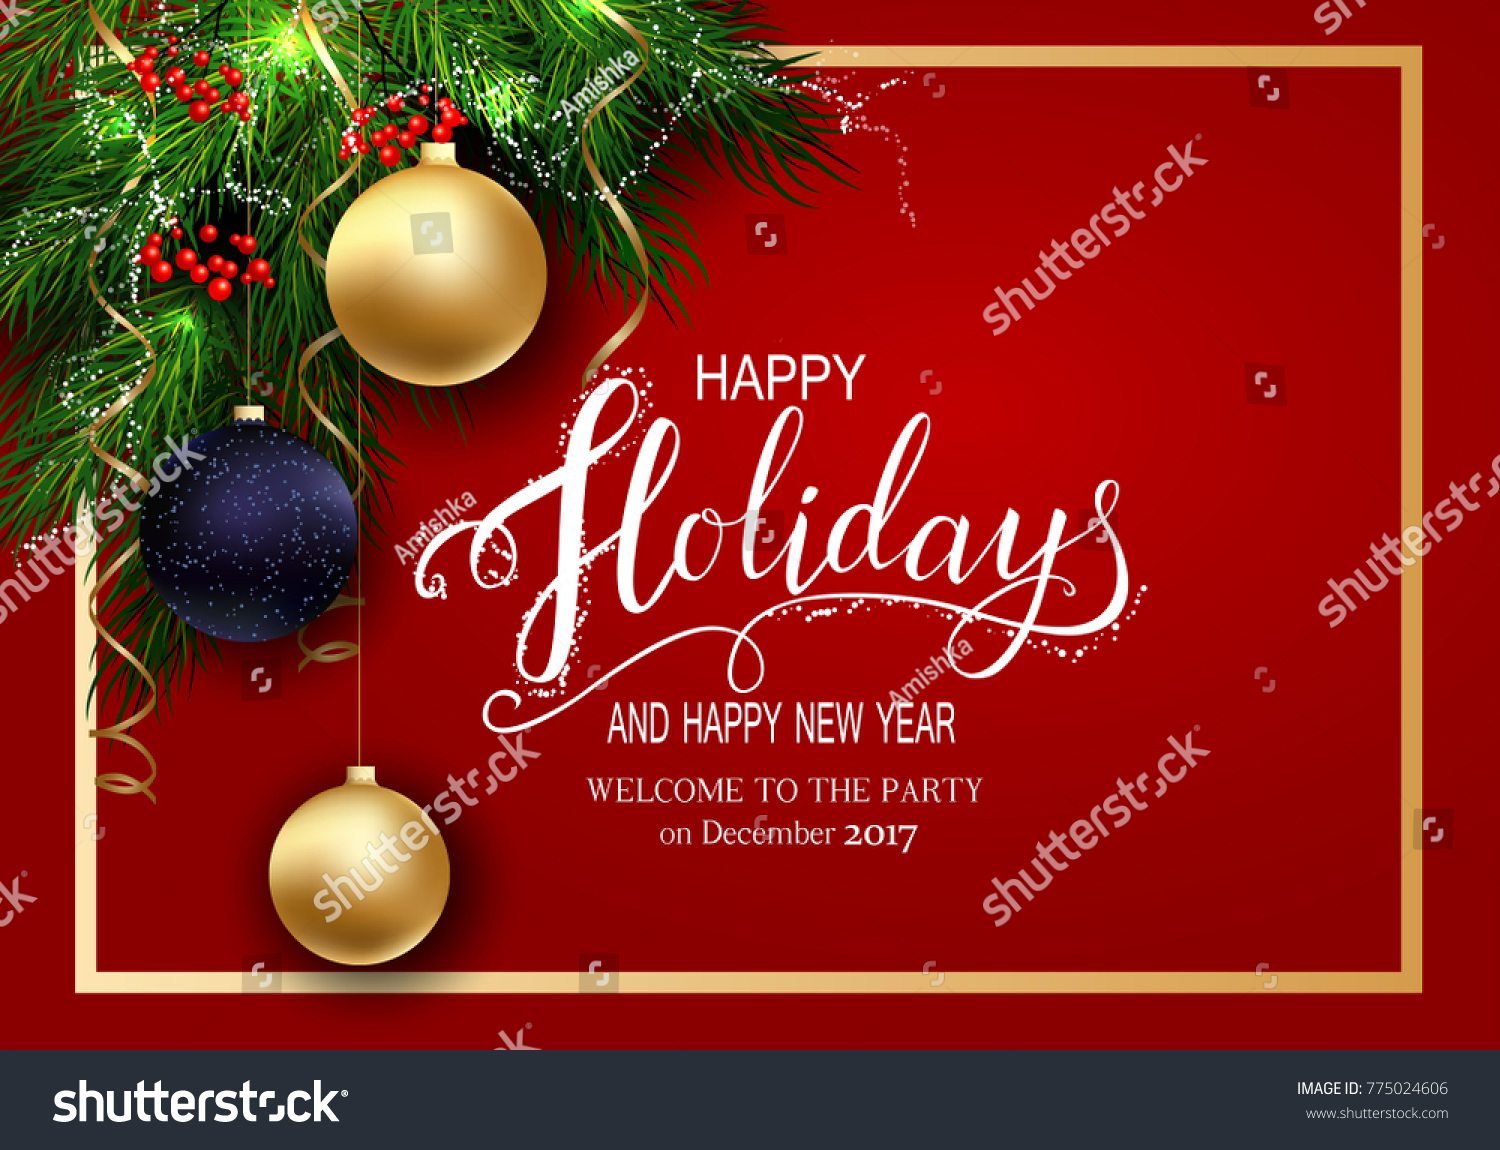 Holidays Greeting Card Winter Happy Holidays Stock Vector 775024606